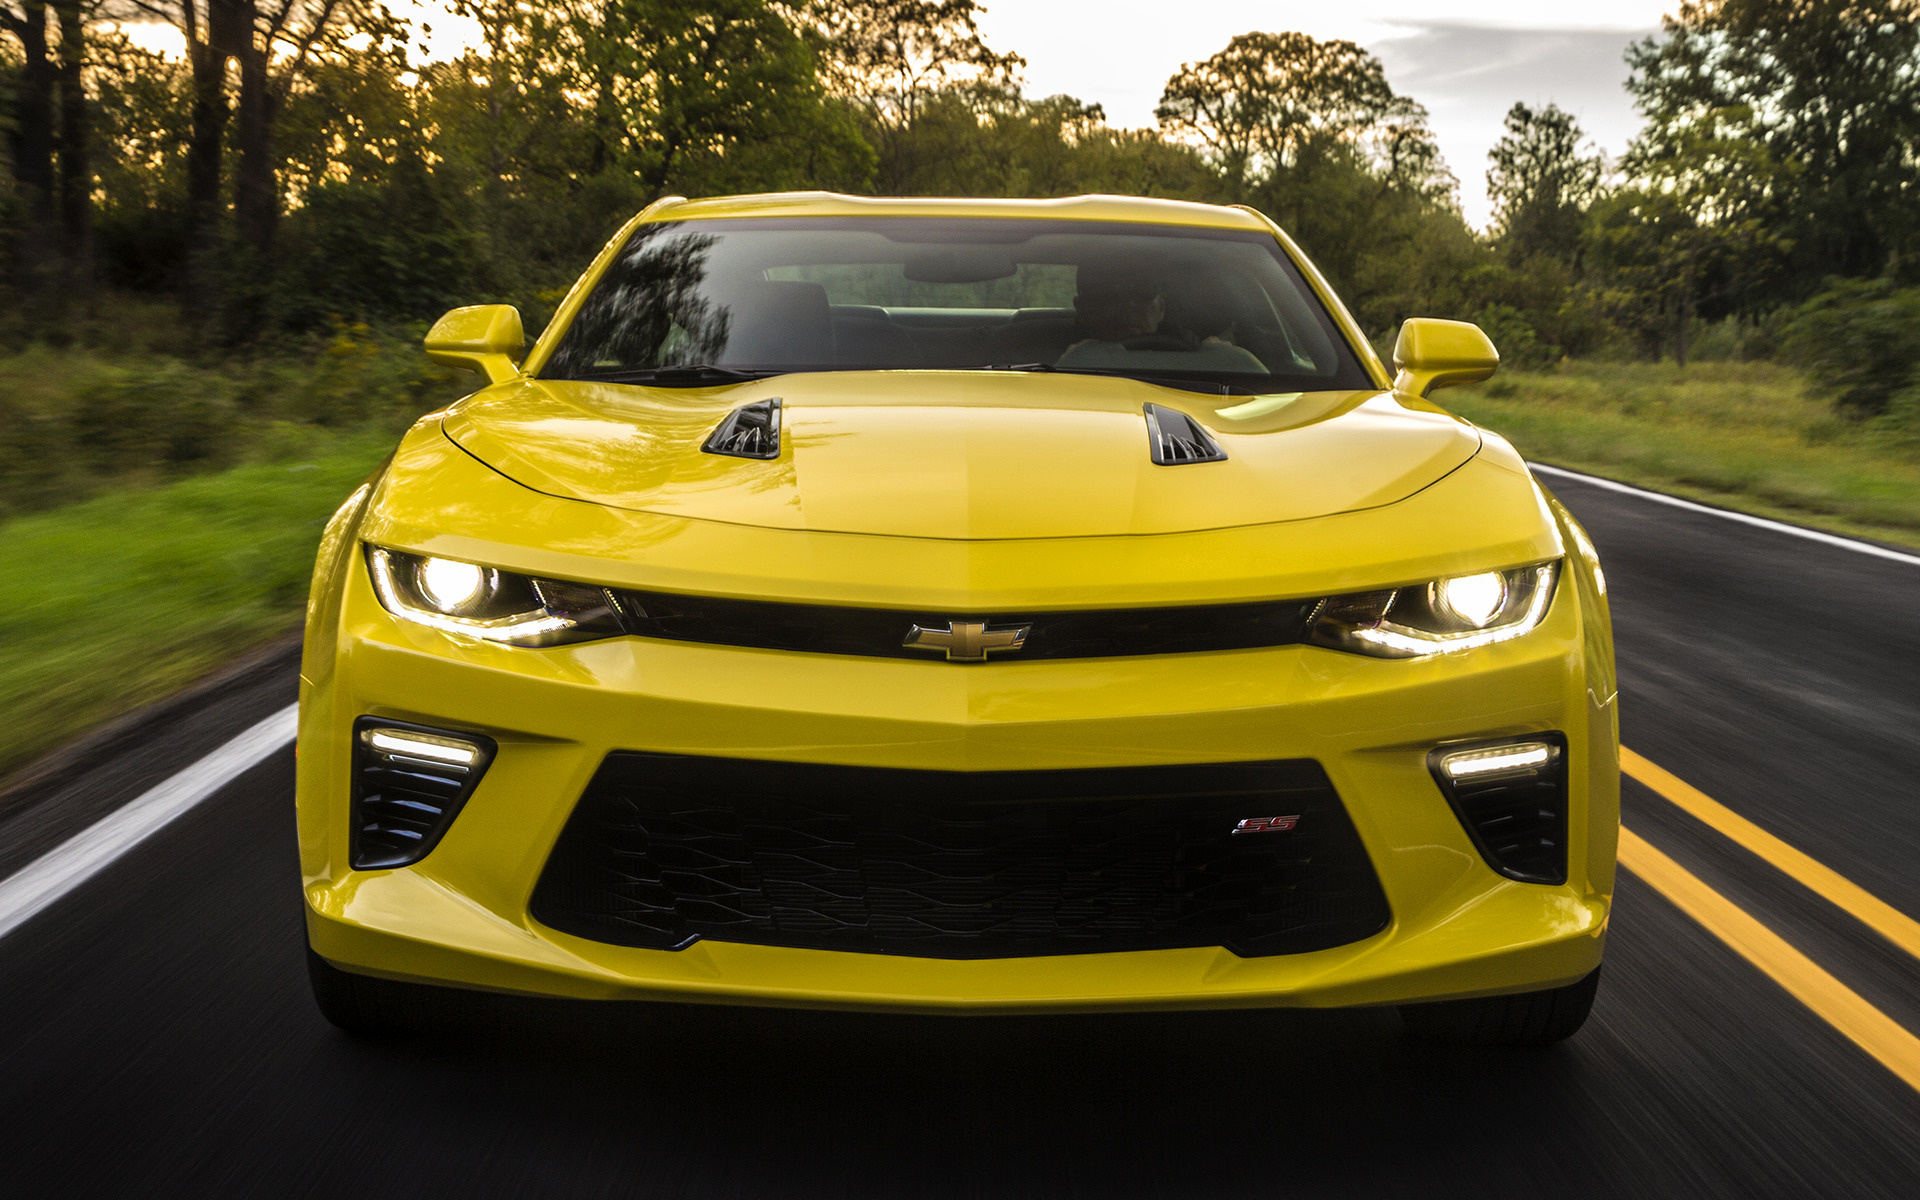 Cars Wallpaper Hd For Desktop 2015 2016 Chevrolet Camaro Ss Wallpapers And Hd Images Car